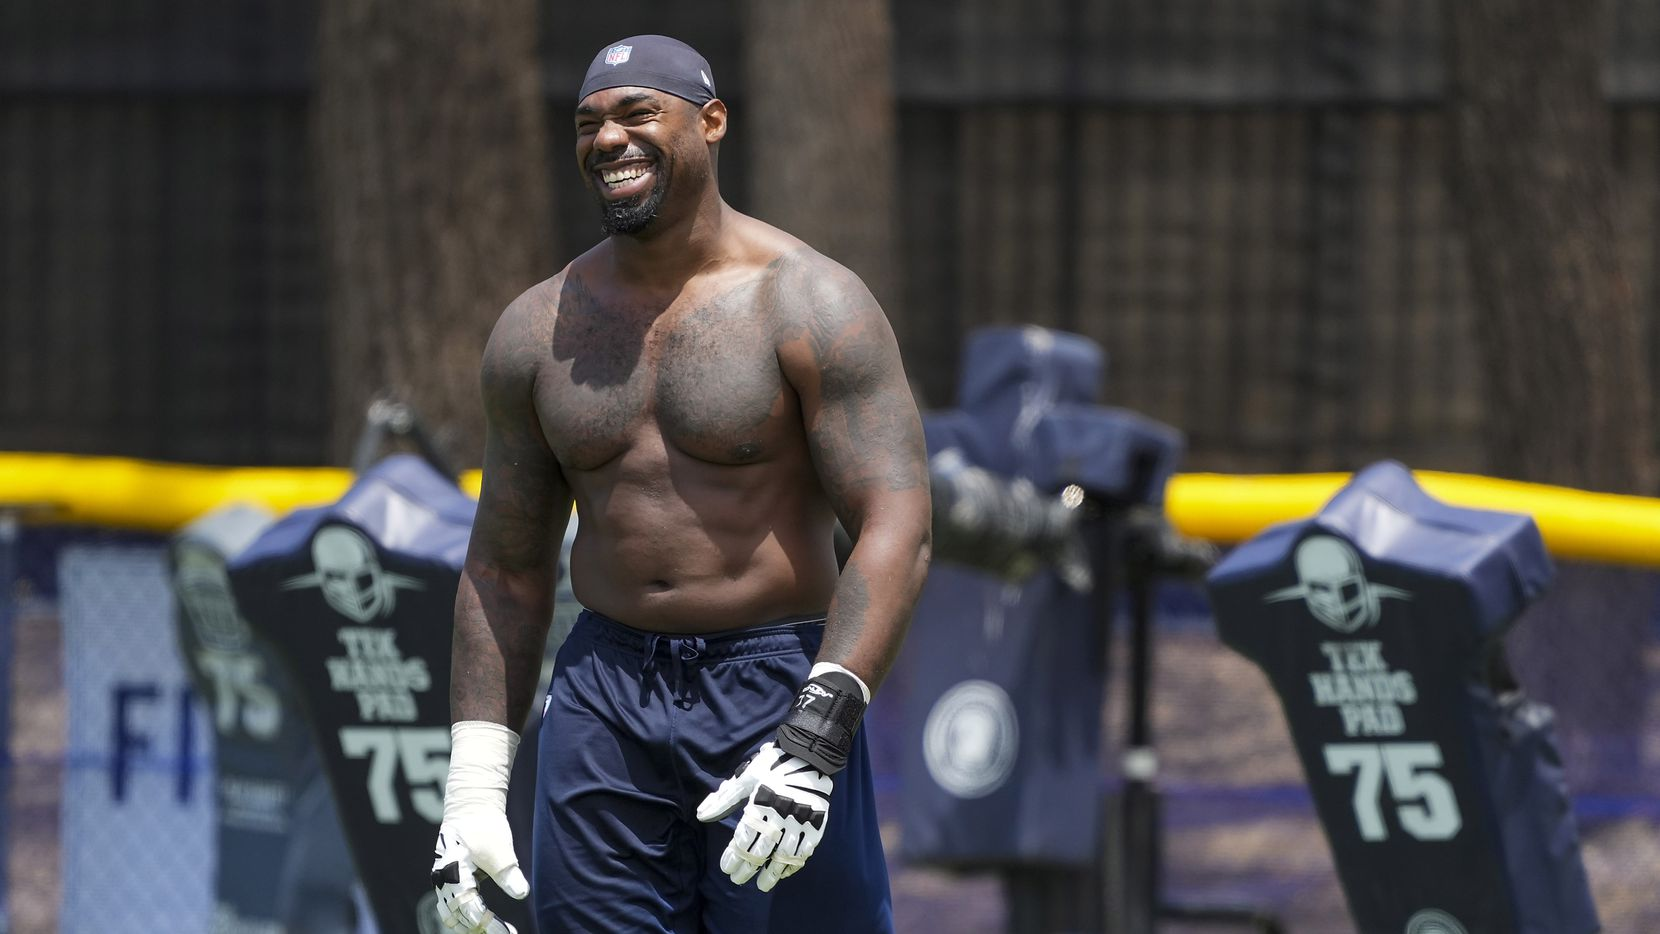 Dallas Cowboys tackle Tyron Smith smiles as he leaves the field following the first practice of the team's training camp on Thursday, July 22, 2021, in Oxnard, Calif.